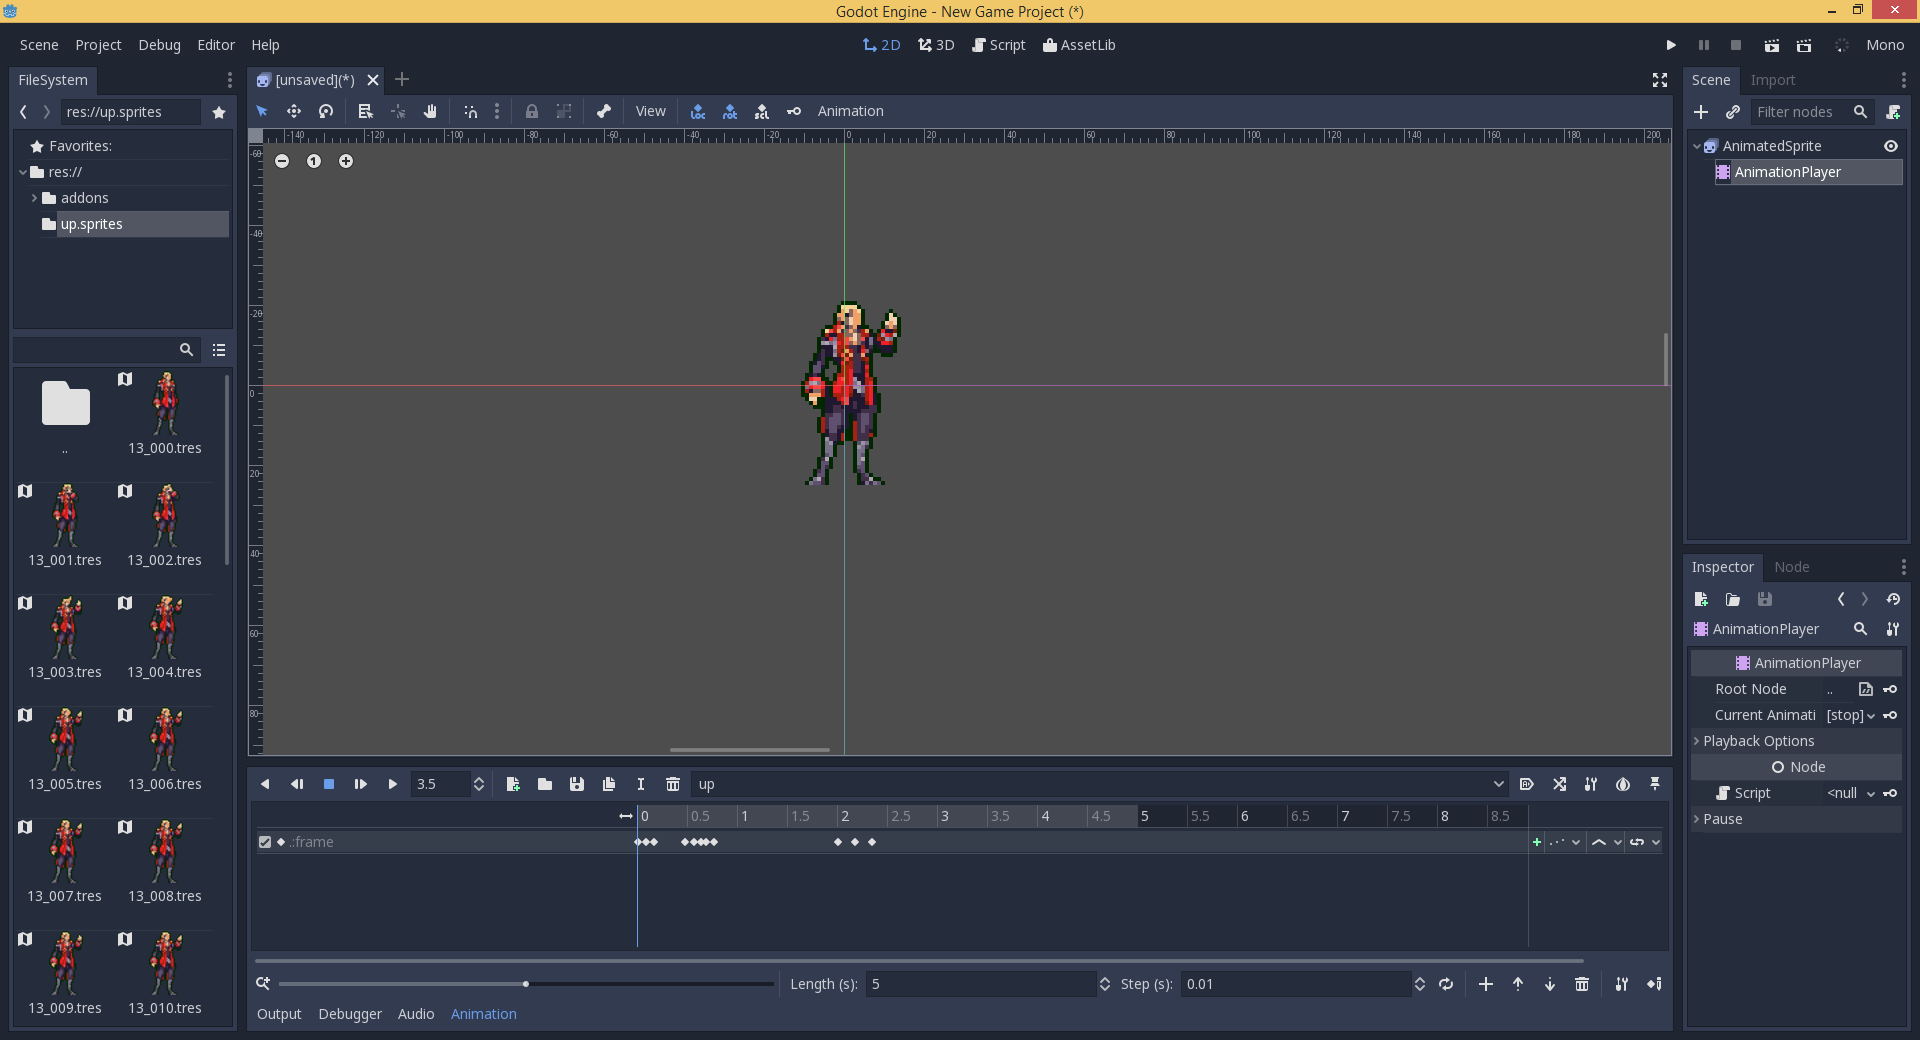 Frame by frame animations on AnimationPlayer are a pain to